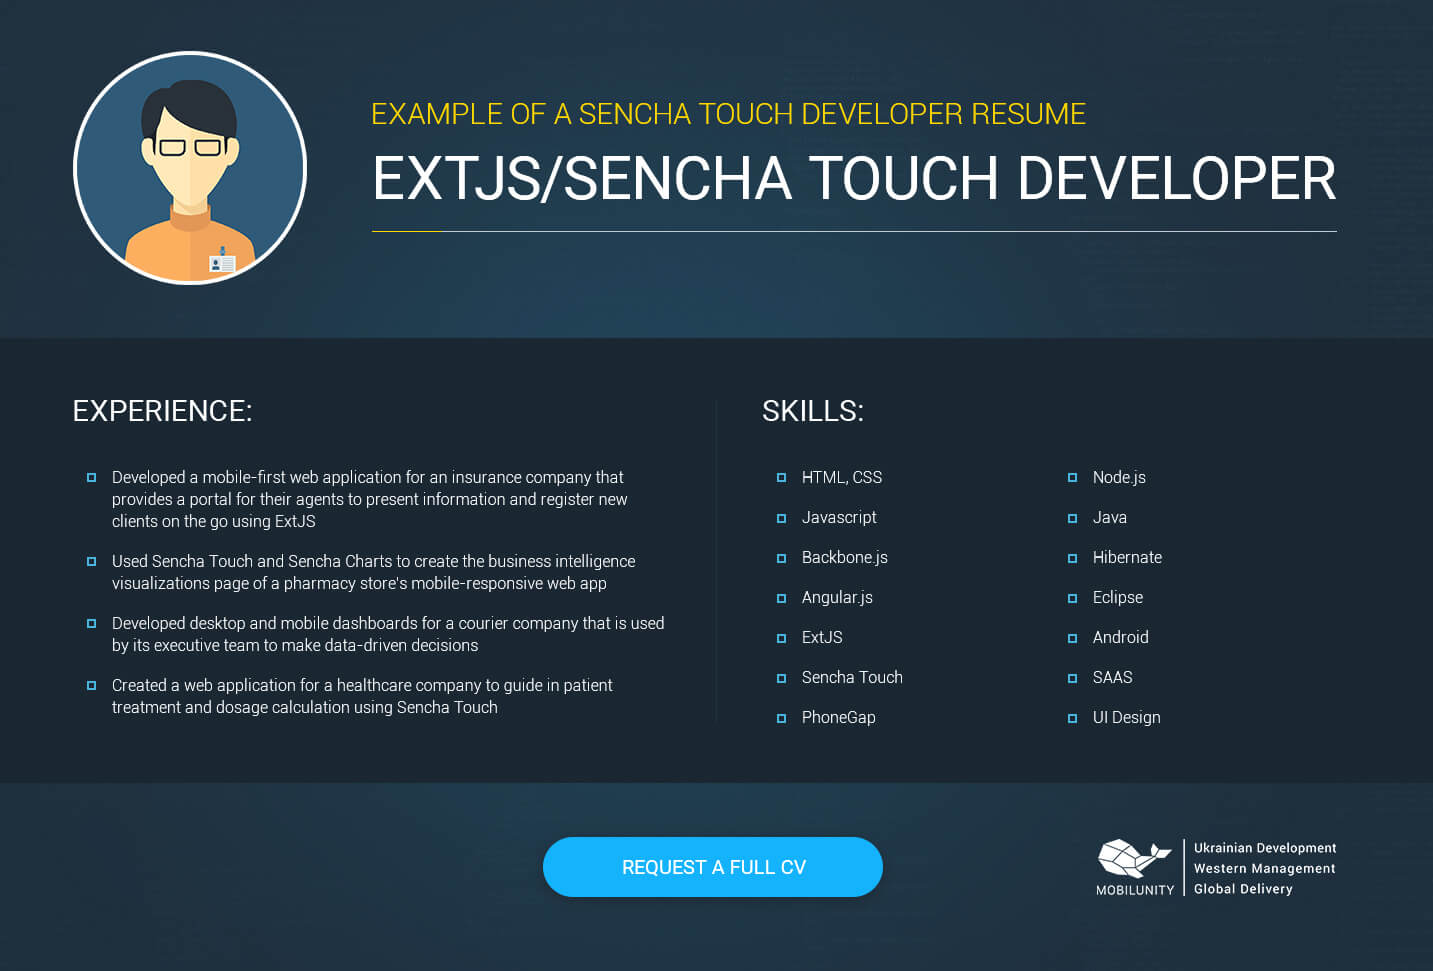 sencha touch developer resume sample